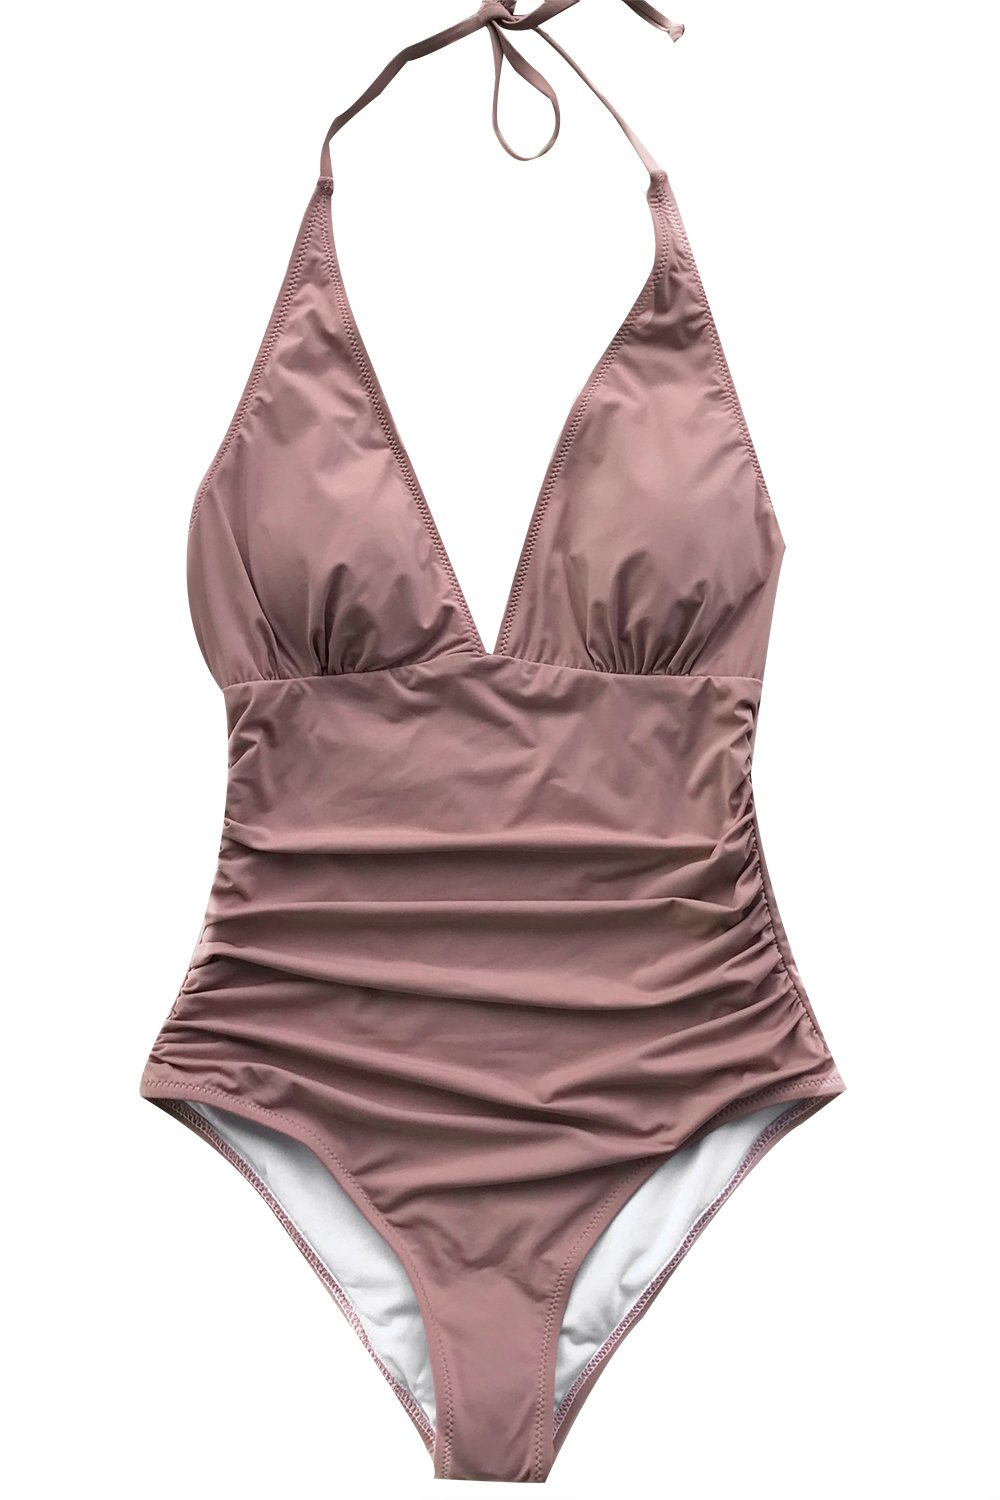 CUPSHE Women's Shirring Design High Waisted Halter One-Piece Swimsuit Small Pink